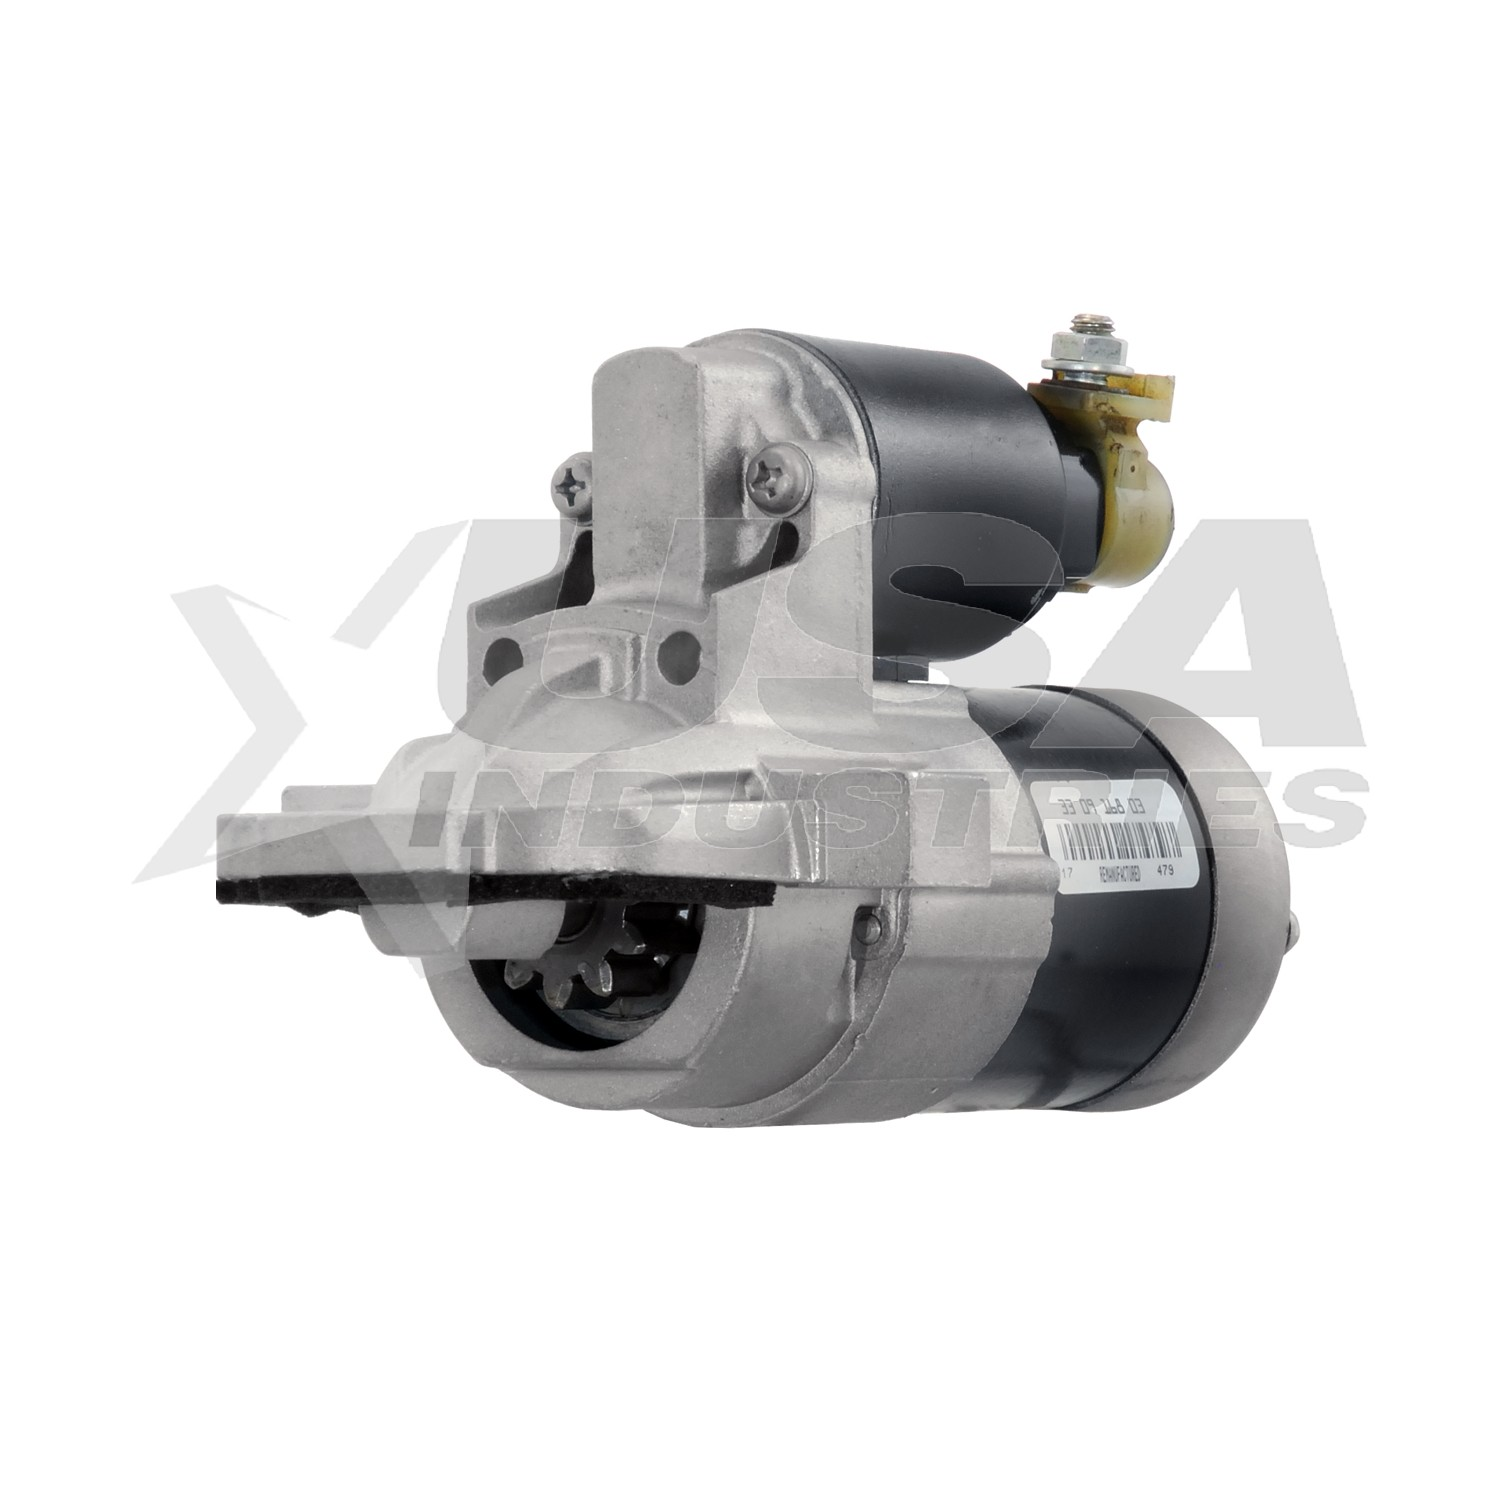 USA INDUSTRIES INC. - Reman Starter Motor - UIE S2914